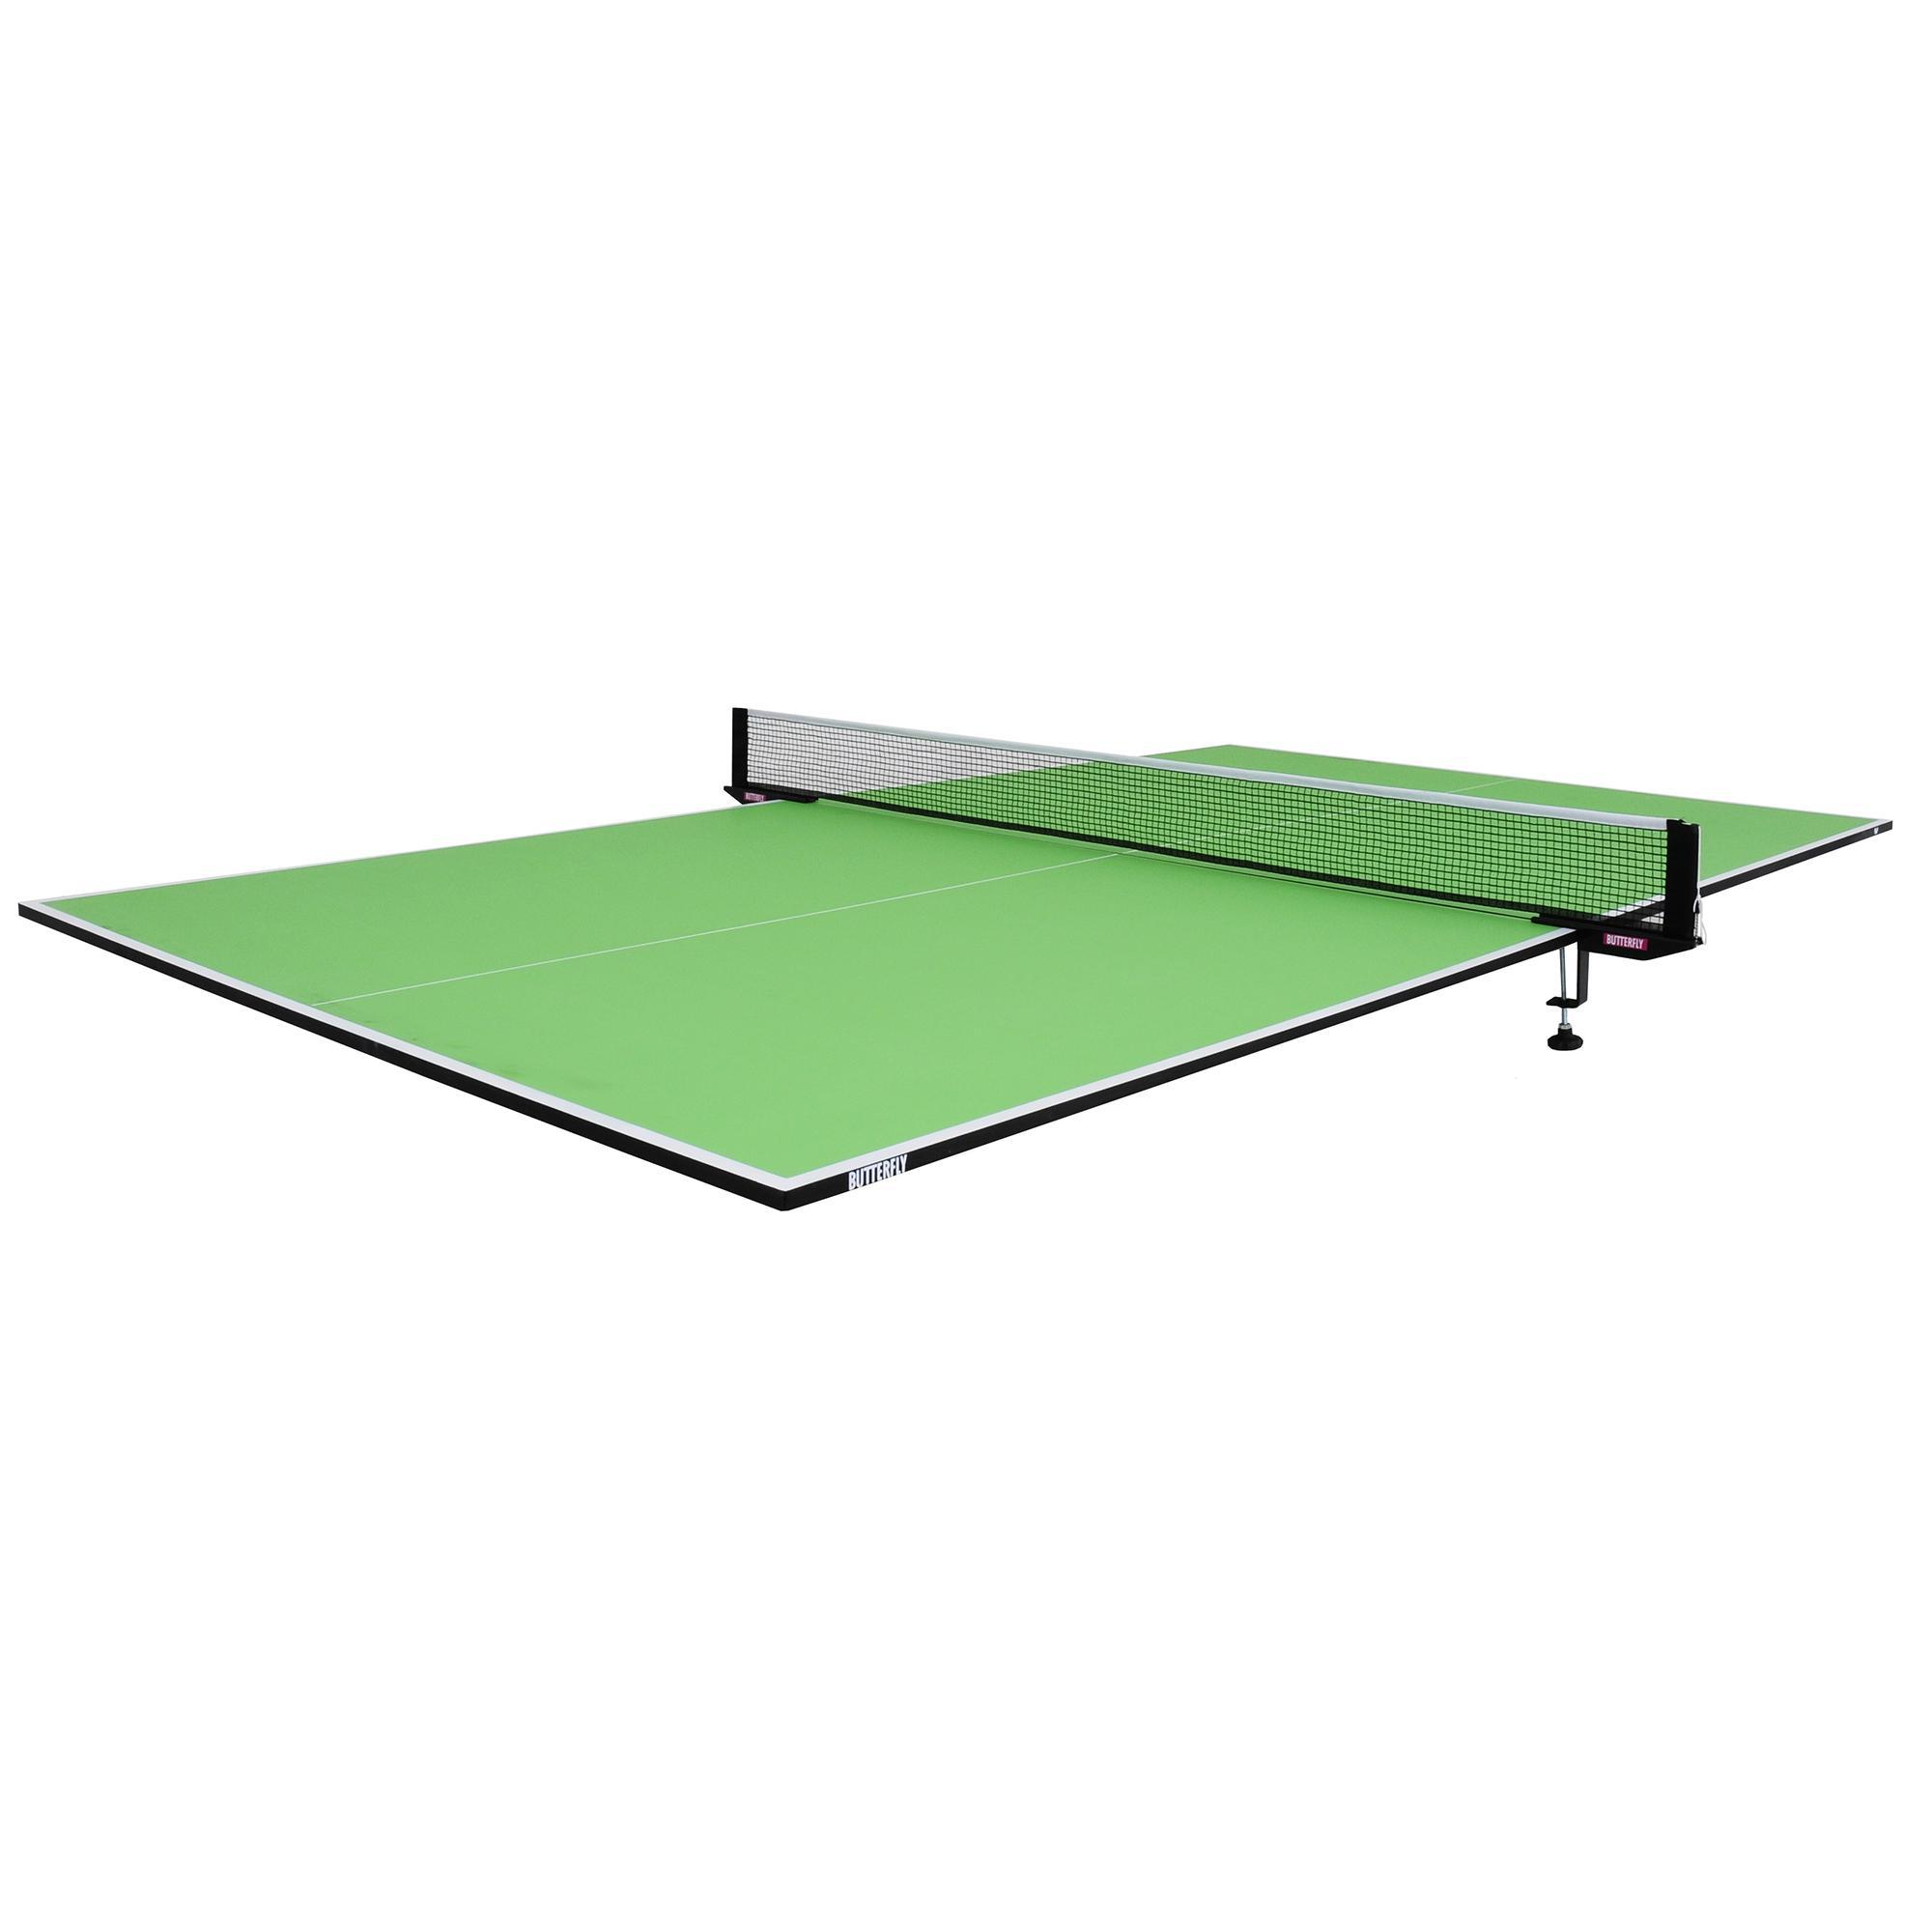 slimline johnlewis lewis online at butterfly rsp com green tennis main buybutterfly table john pdp indoor